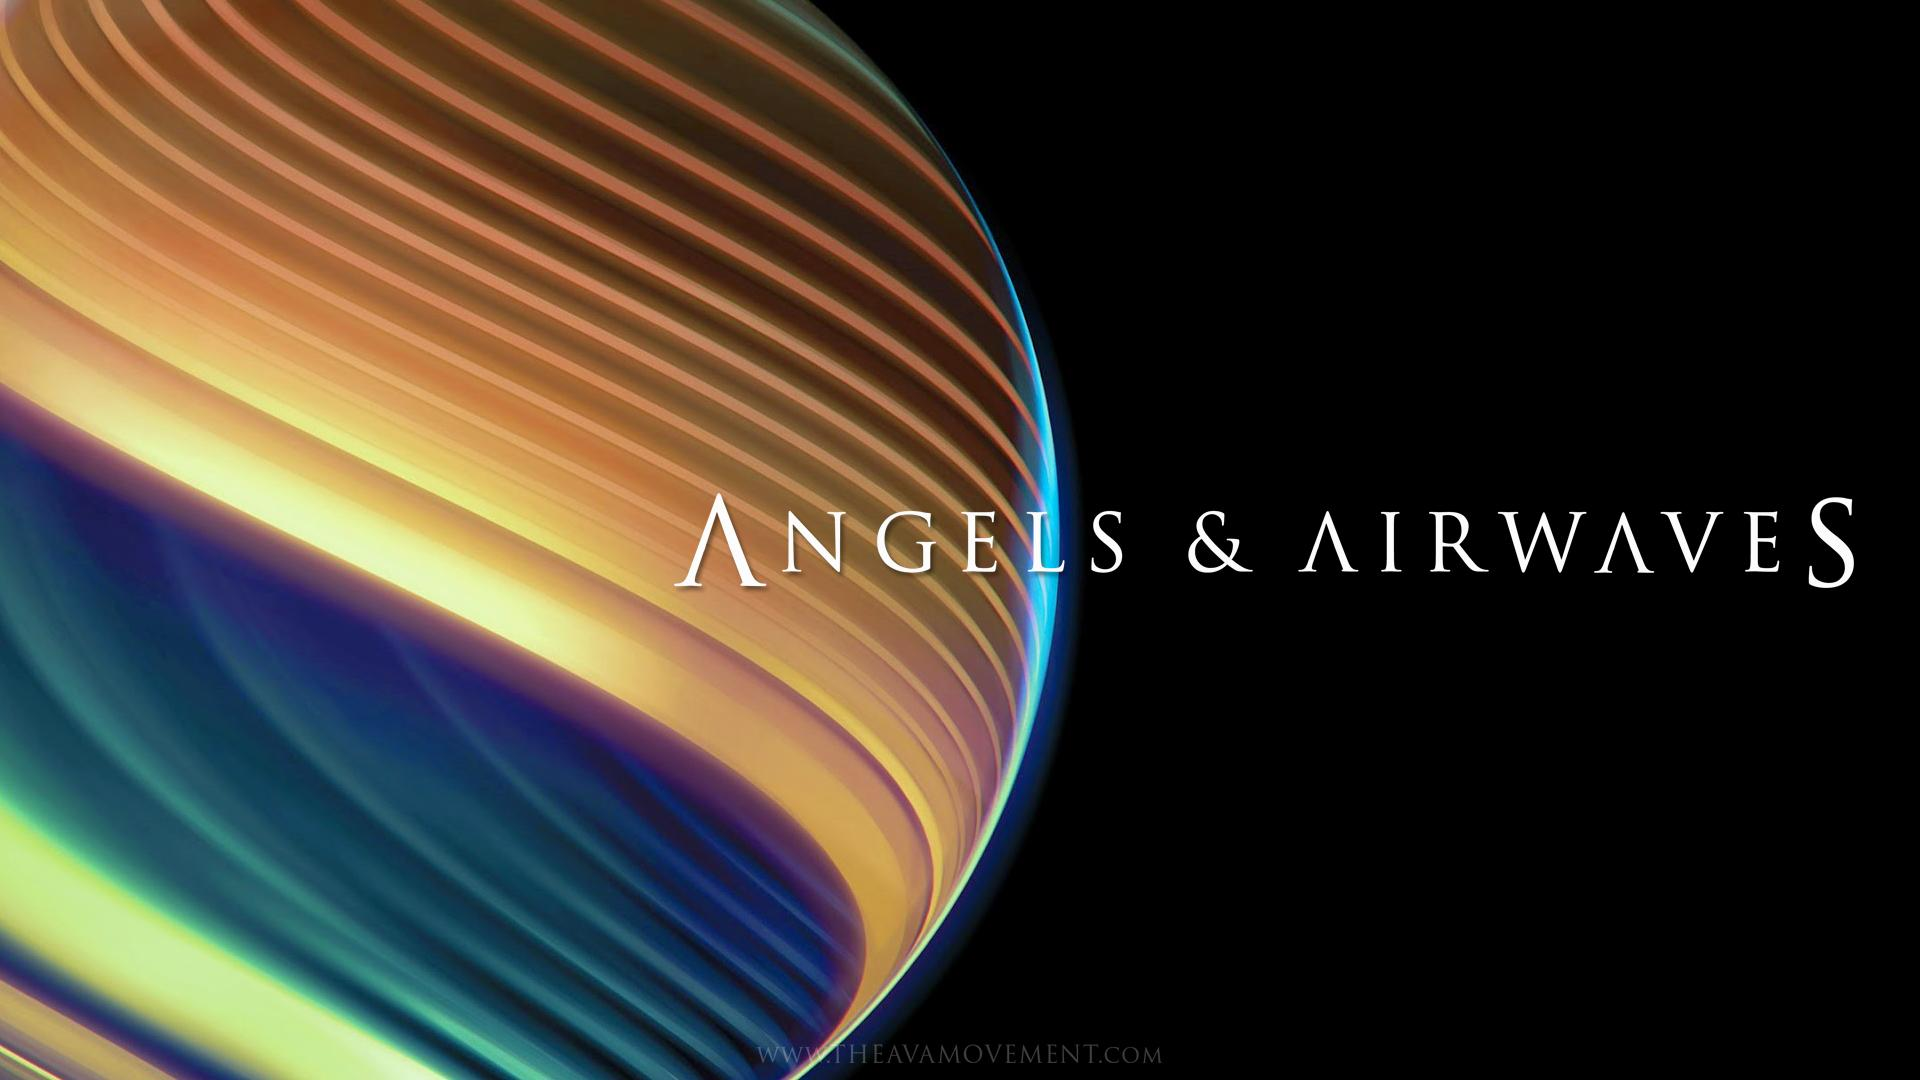 Live Wallpaper For Iphone 6 Without Jailbreak Download Angels And Airwaves Wallpaper Gallery